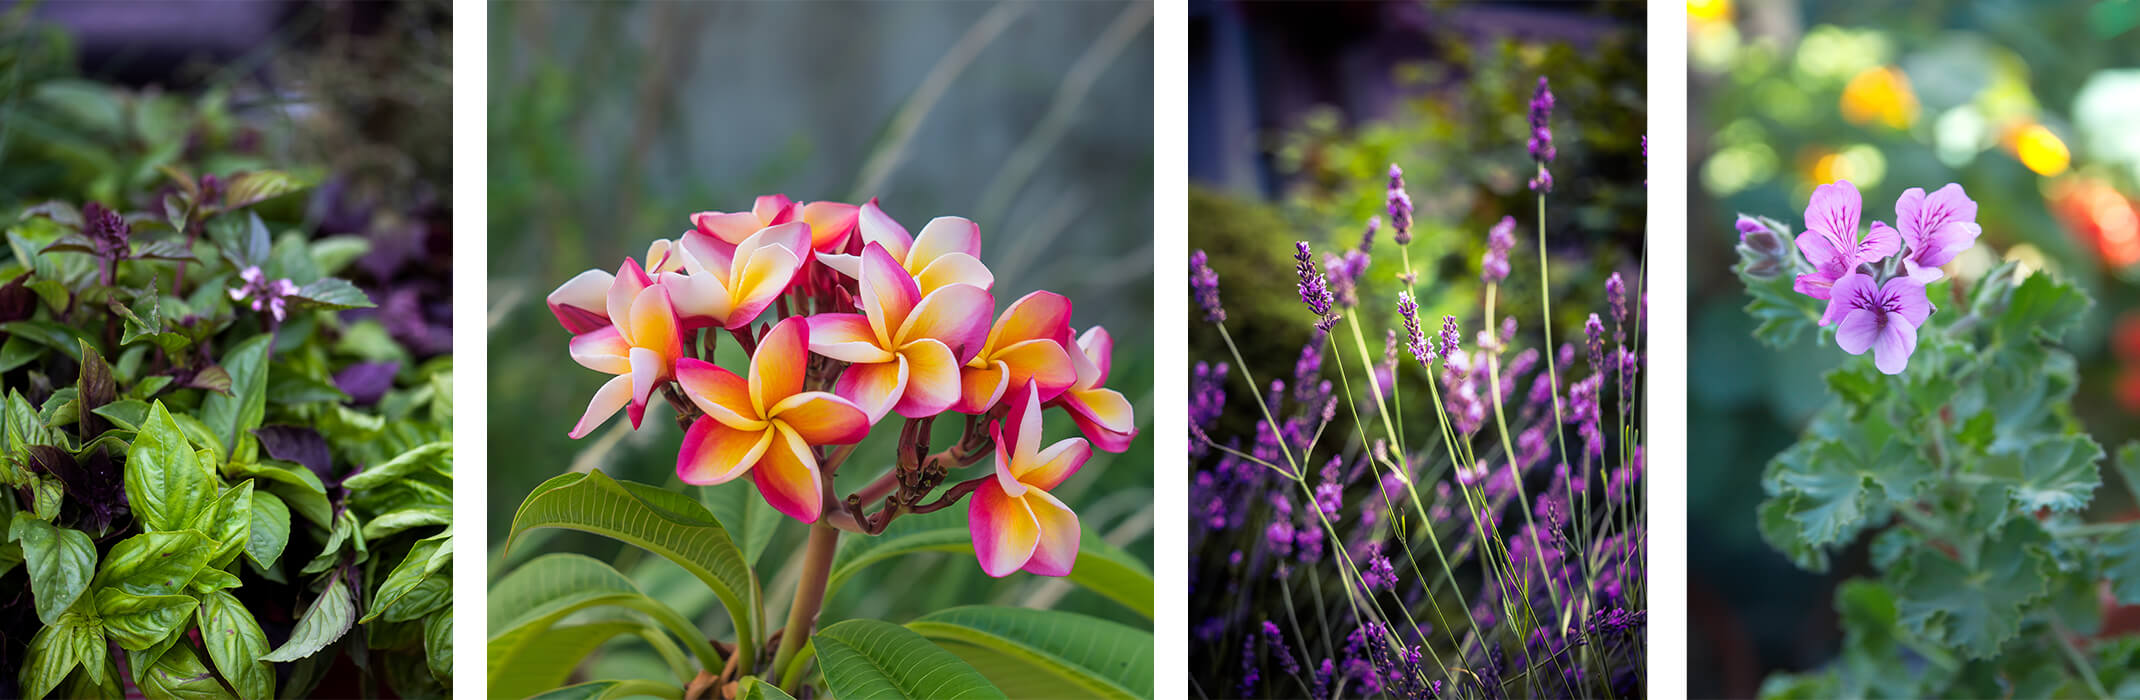 a Collage of 4 scented plants: green and purple basils, pink and yellow plumeria, lavender, and purple scented geranium